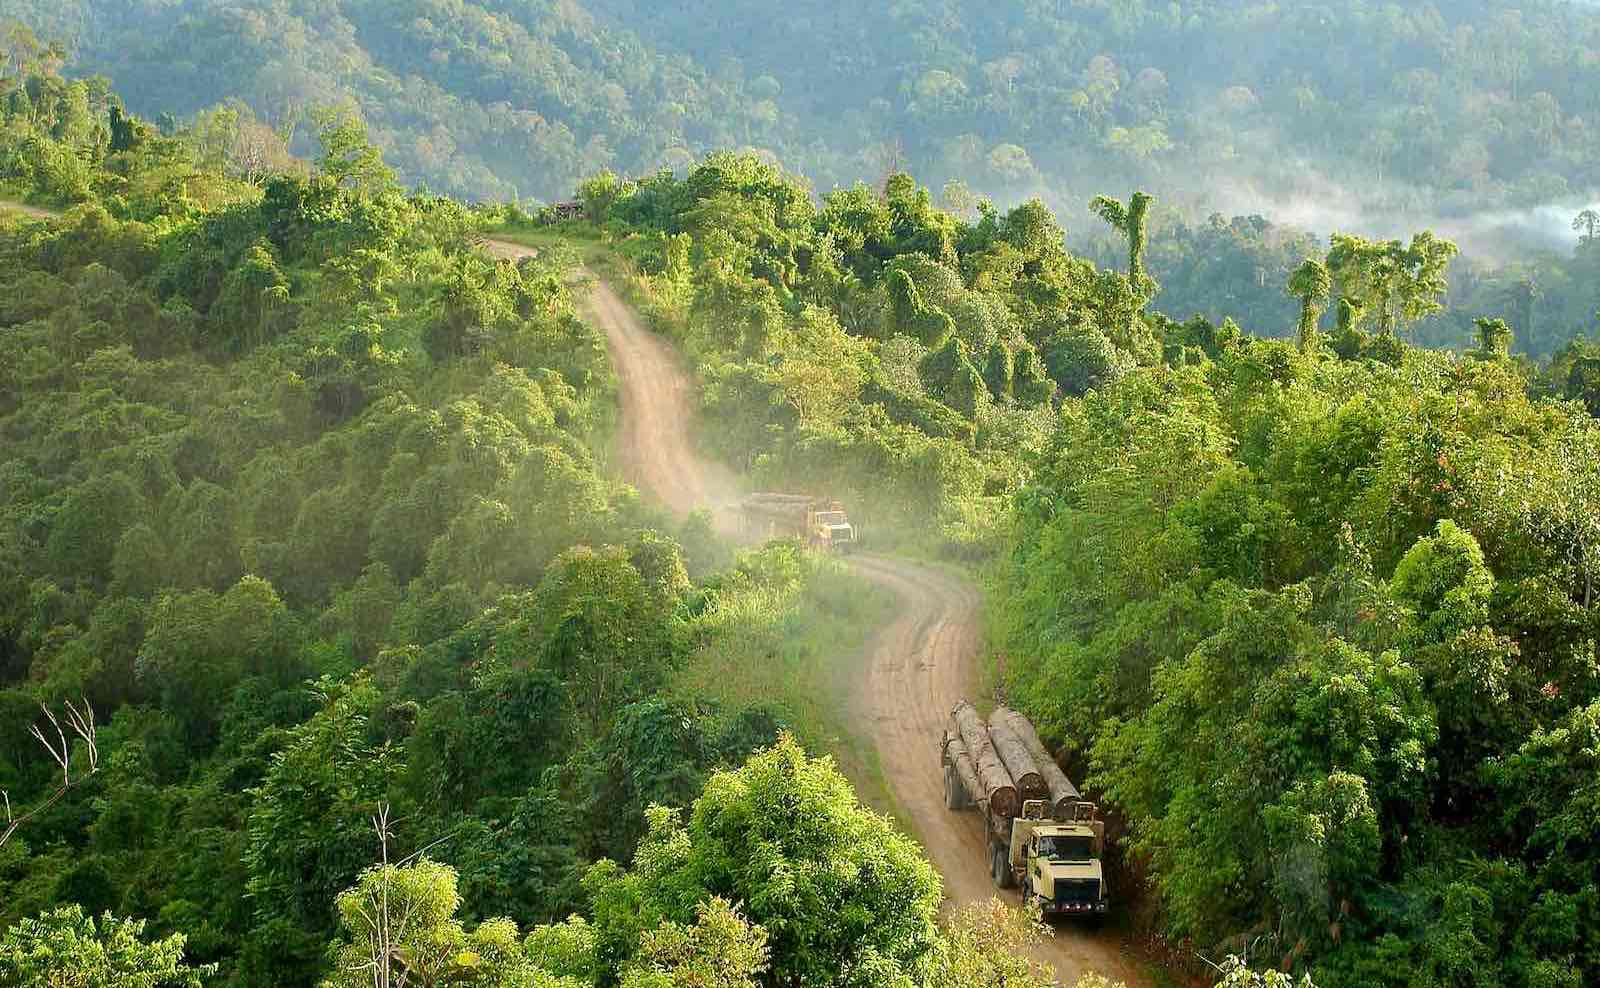 Logging trucks in East Kalimantan, Indonesia (Photo: CIFOR/Flickr)